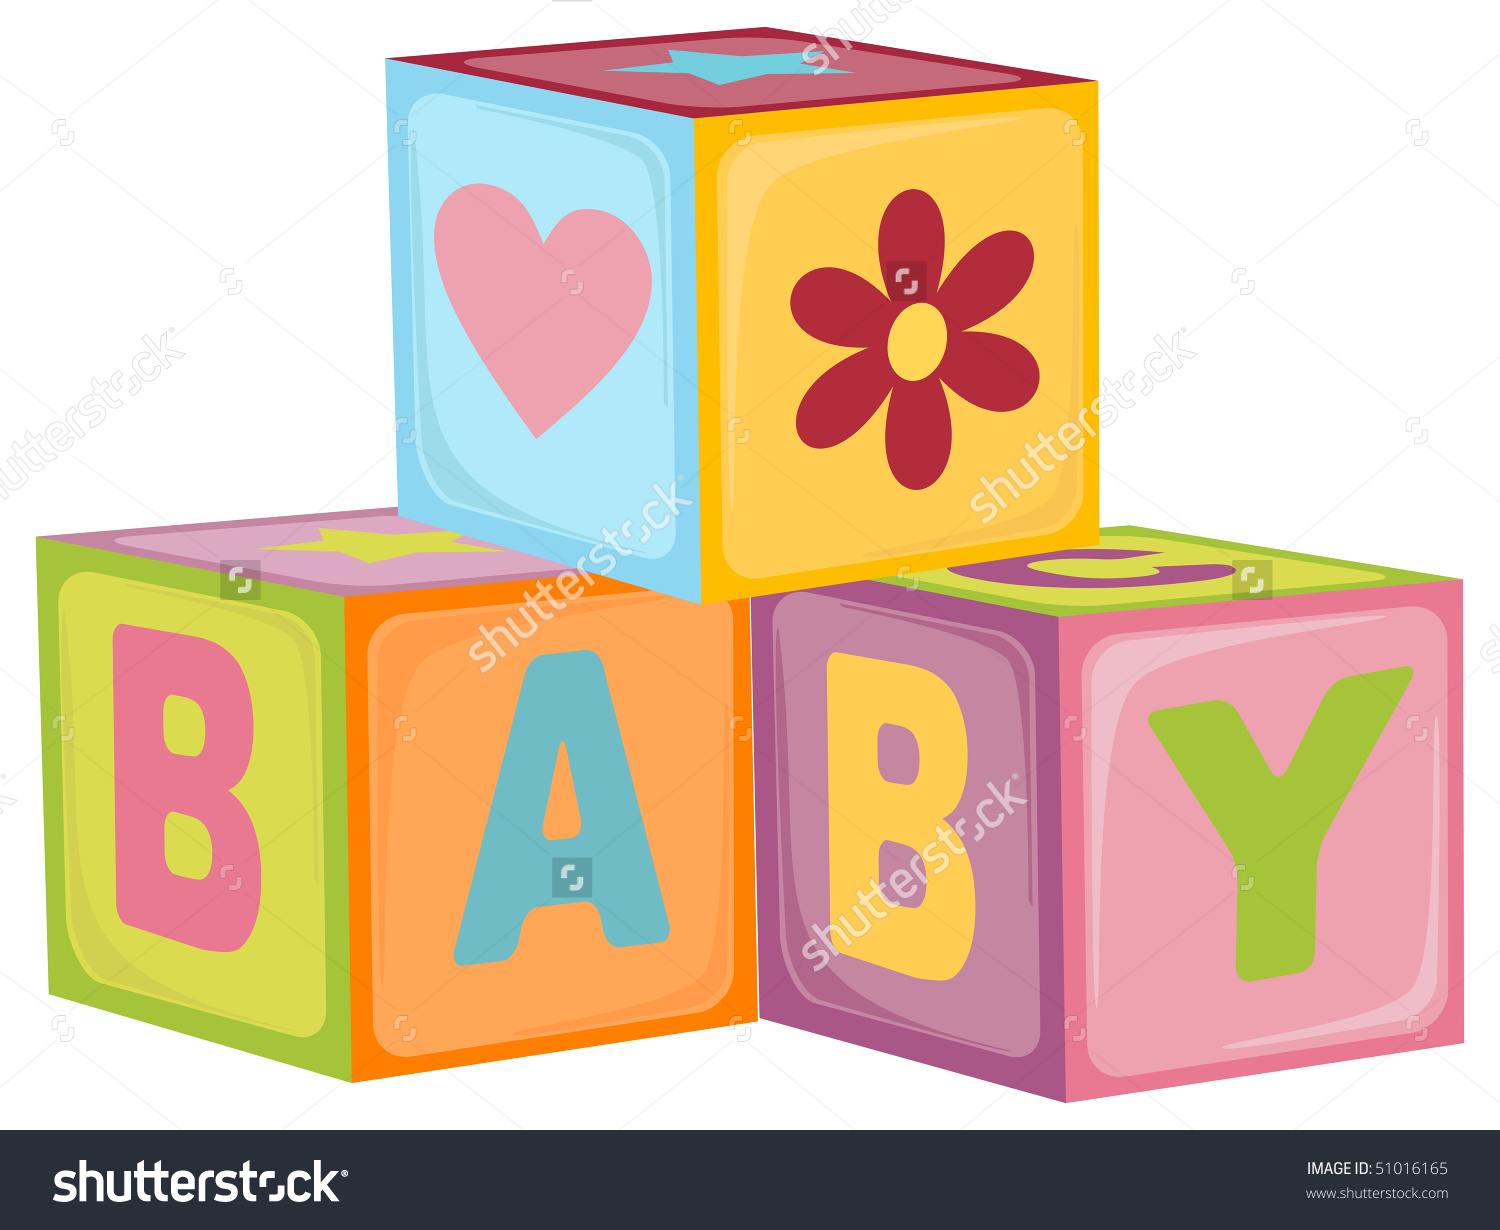 Clip art images clipartall. Baby building blocks clipart